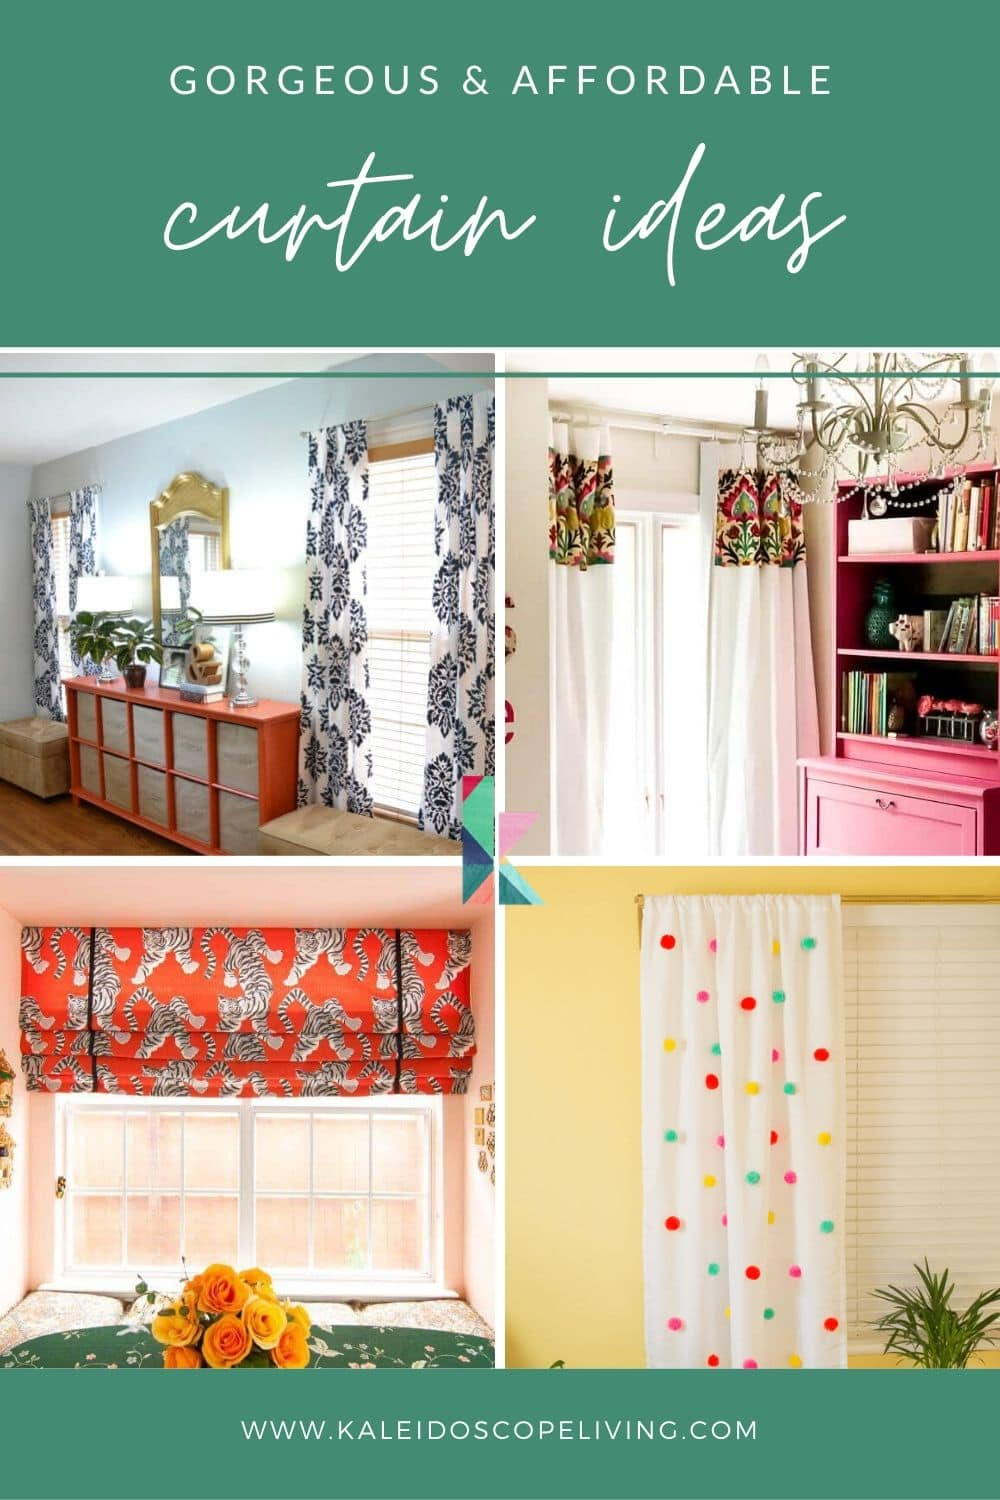 22 Amazing Diy Curtains That Look Expensive Kaleidoscope Living